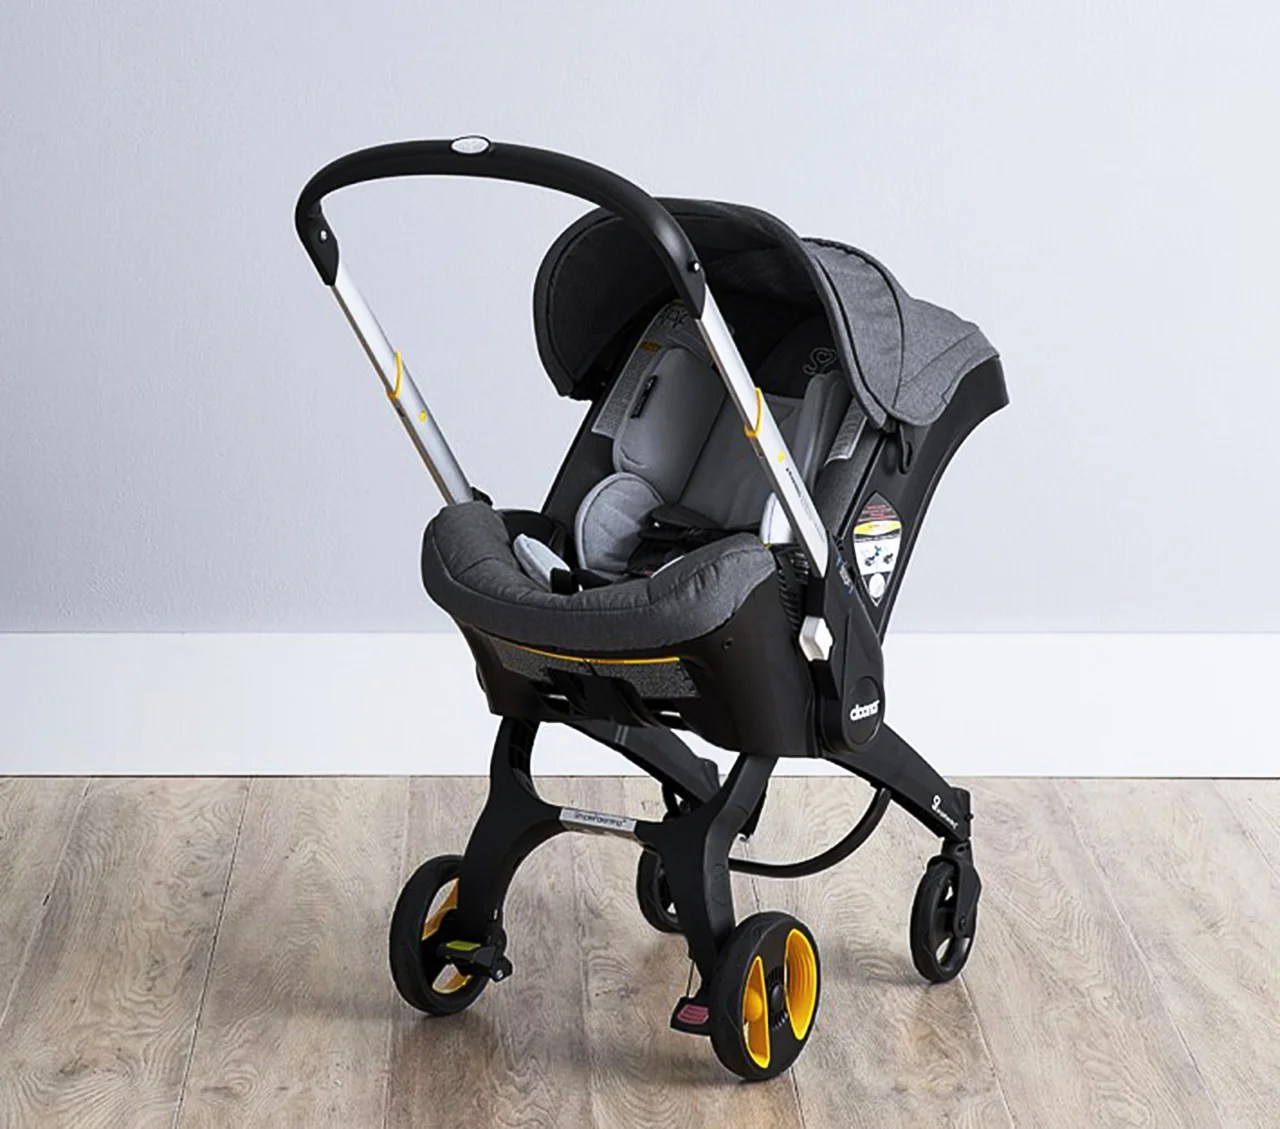 Baby Pram And Car Seat Combo Meet The Car Seat That Converts Into A Stroller In Seconds